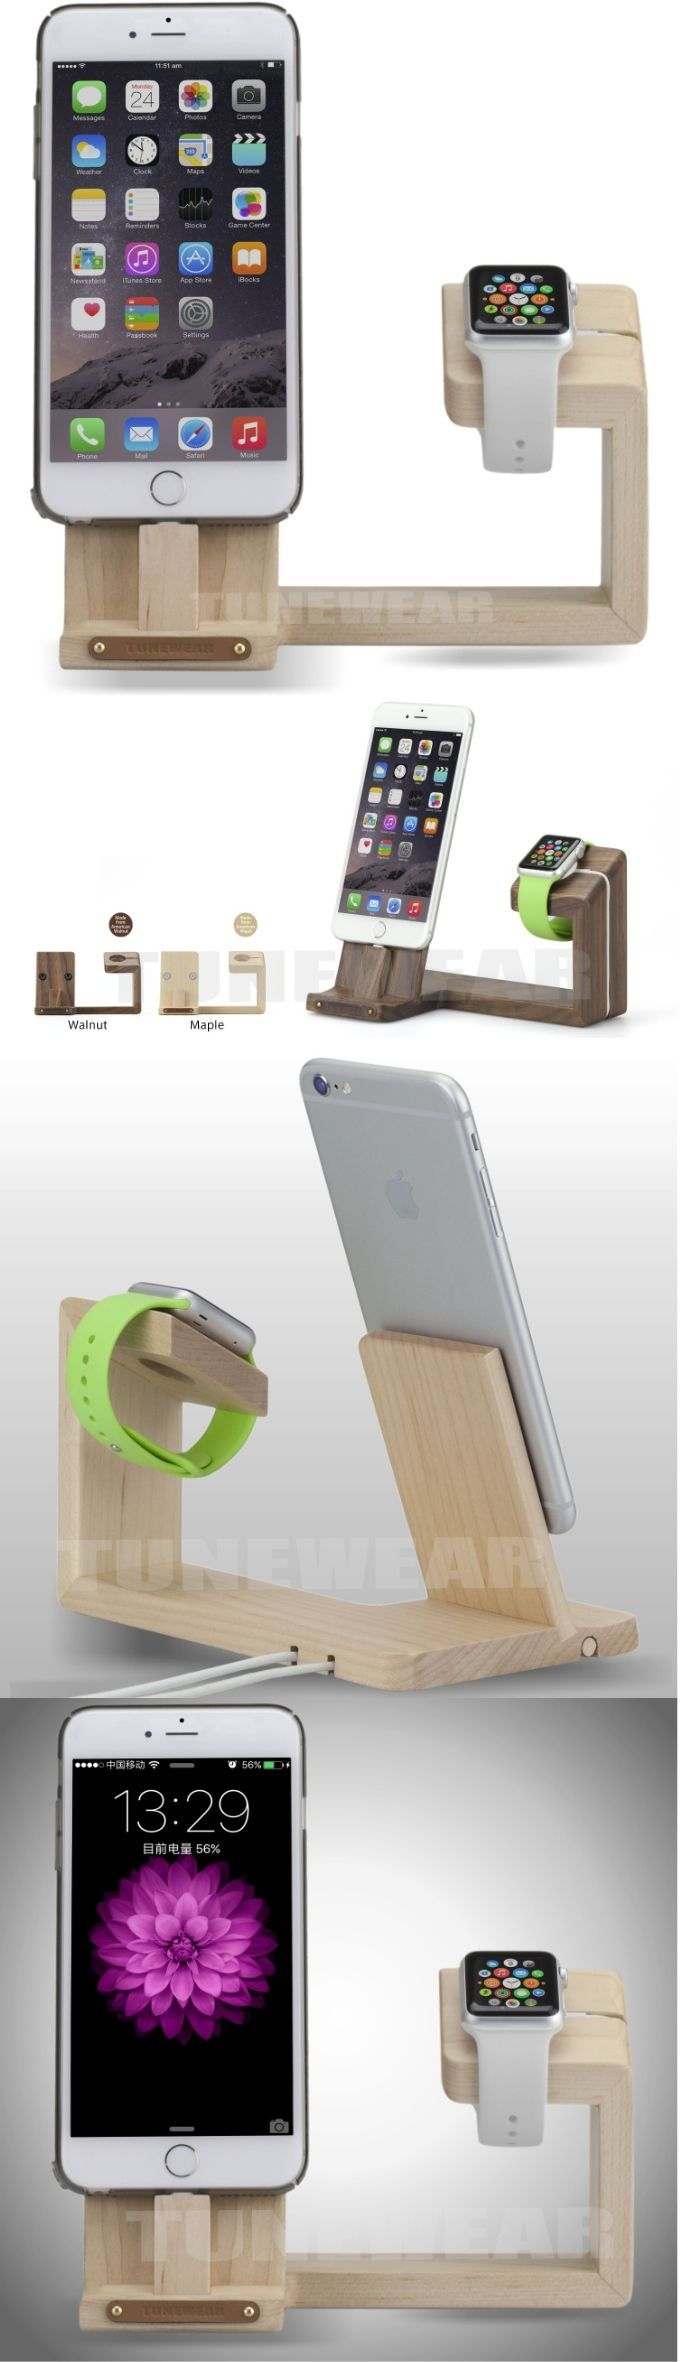 Bamboo Wooden Apple Watch Charging Stand Charging Docks Holder iPhone Charging Stand Docks for Apple Watch Series 3/2/1/ AirPods/ iPhone X/8/8Plus/7/7 Plus /6S /6S Plus/ iPad #iphoneairpods,